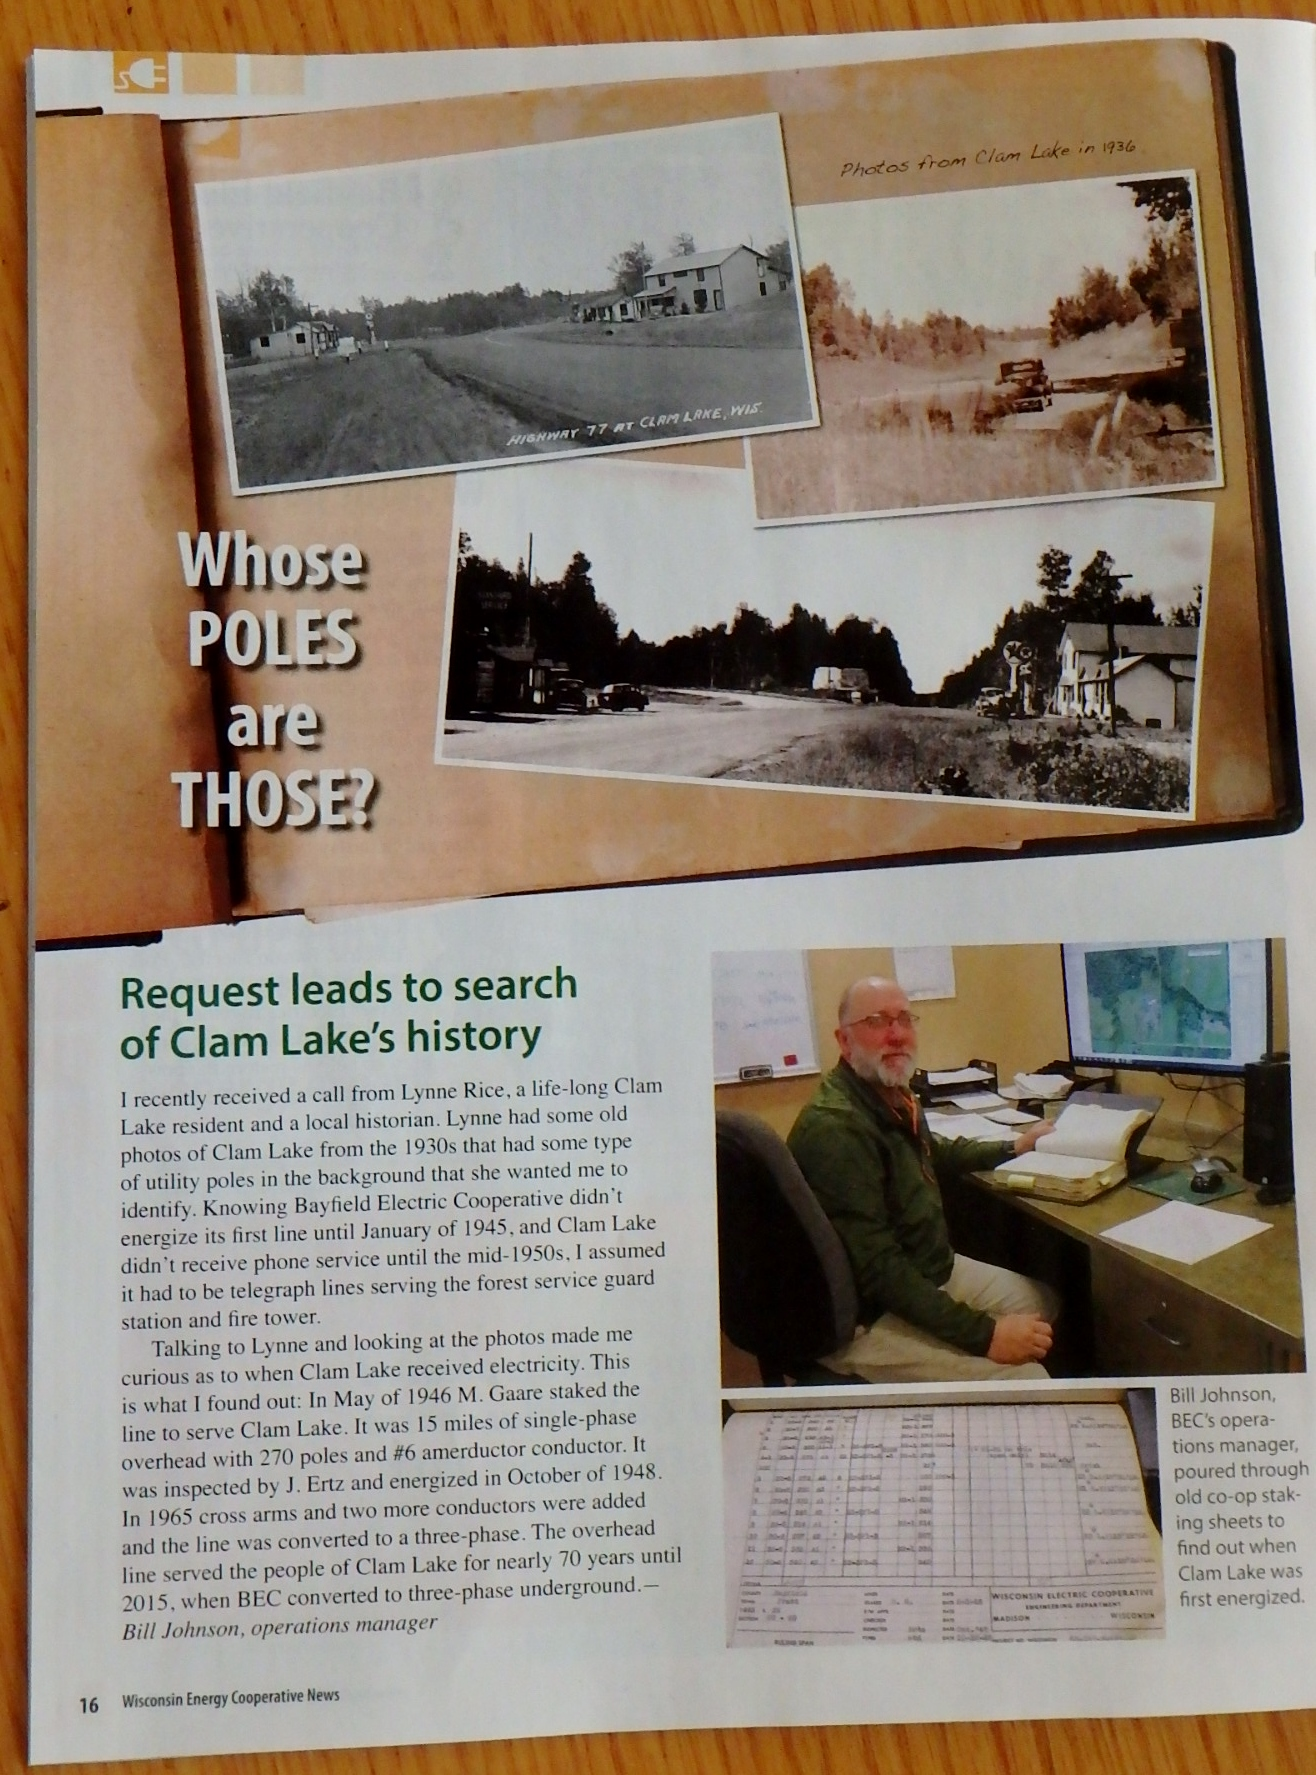 Bill Johnson, BEC's operations manager, poured through old co-op staking sheets to find out when Clam Lake was first energized.